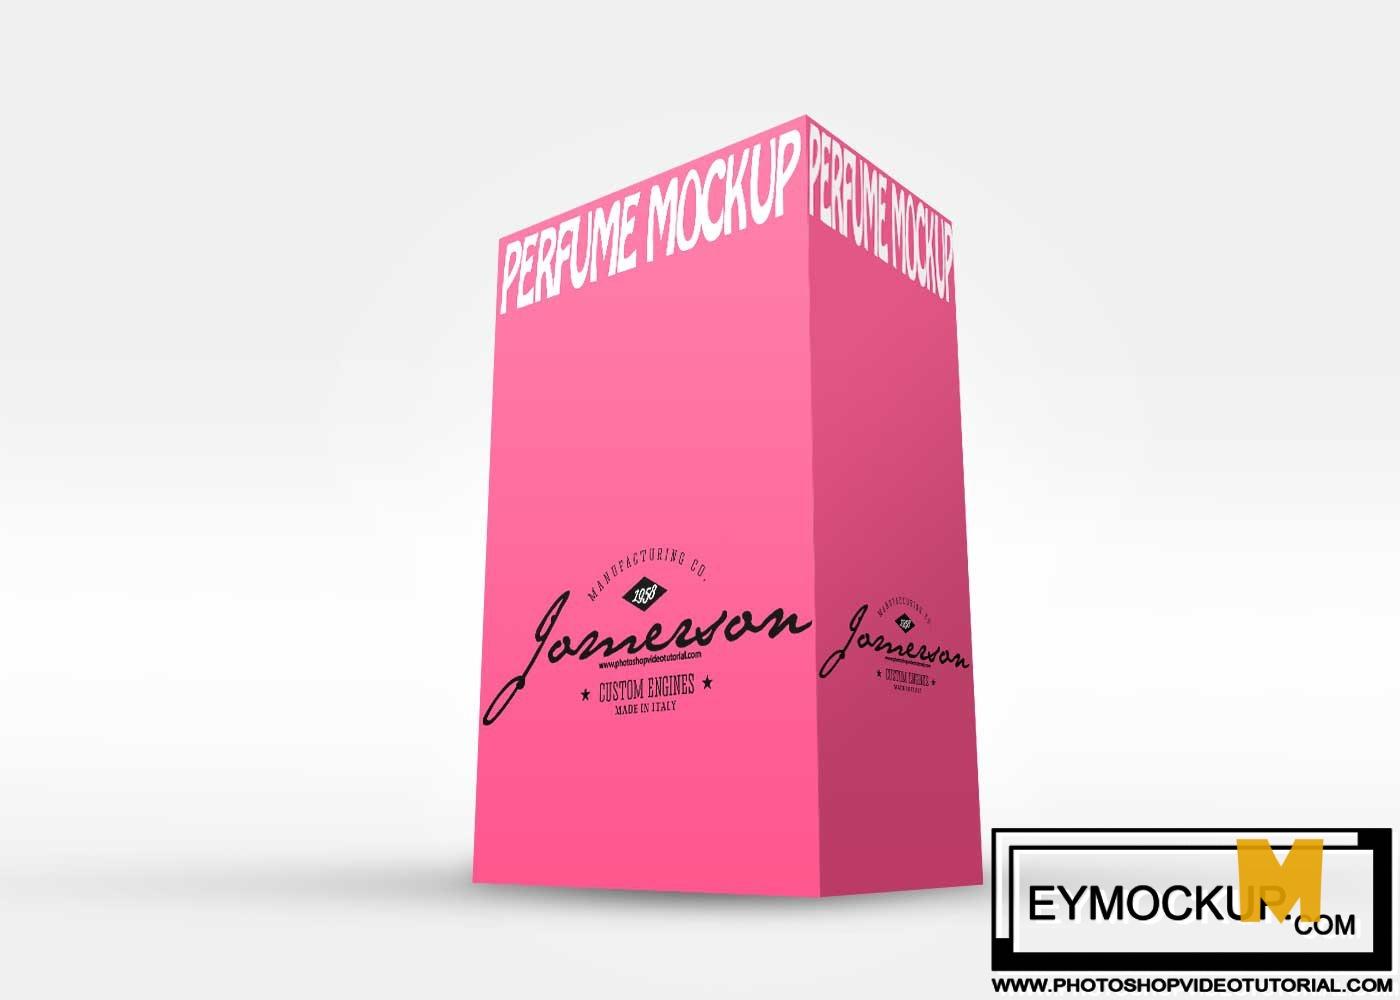 fragrance box mockup